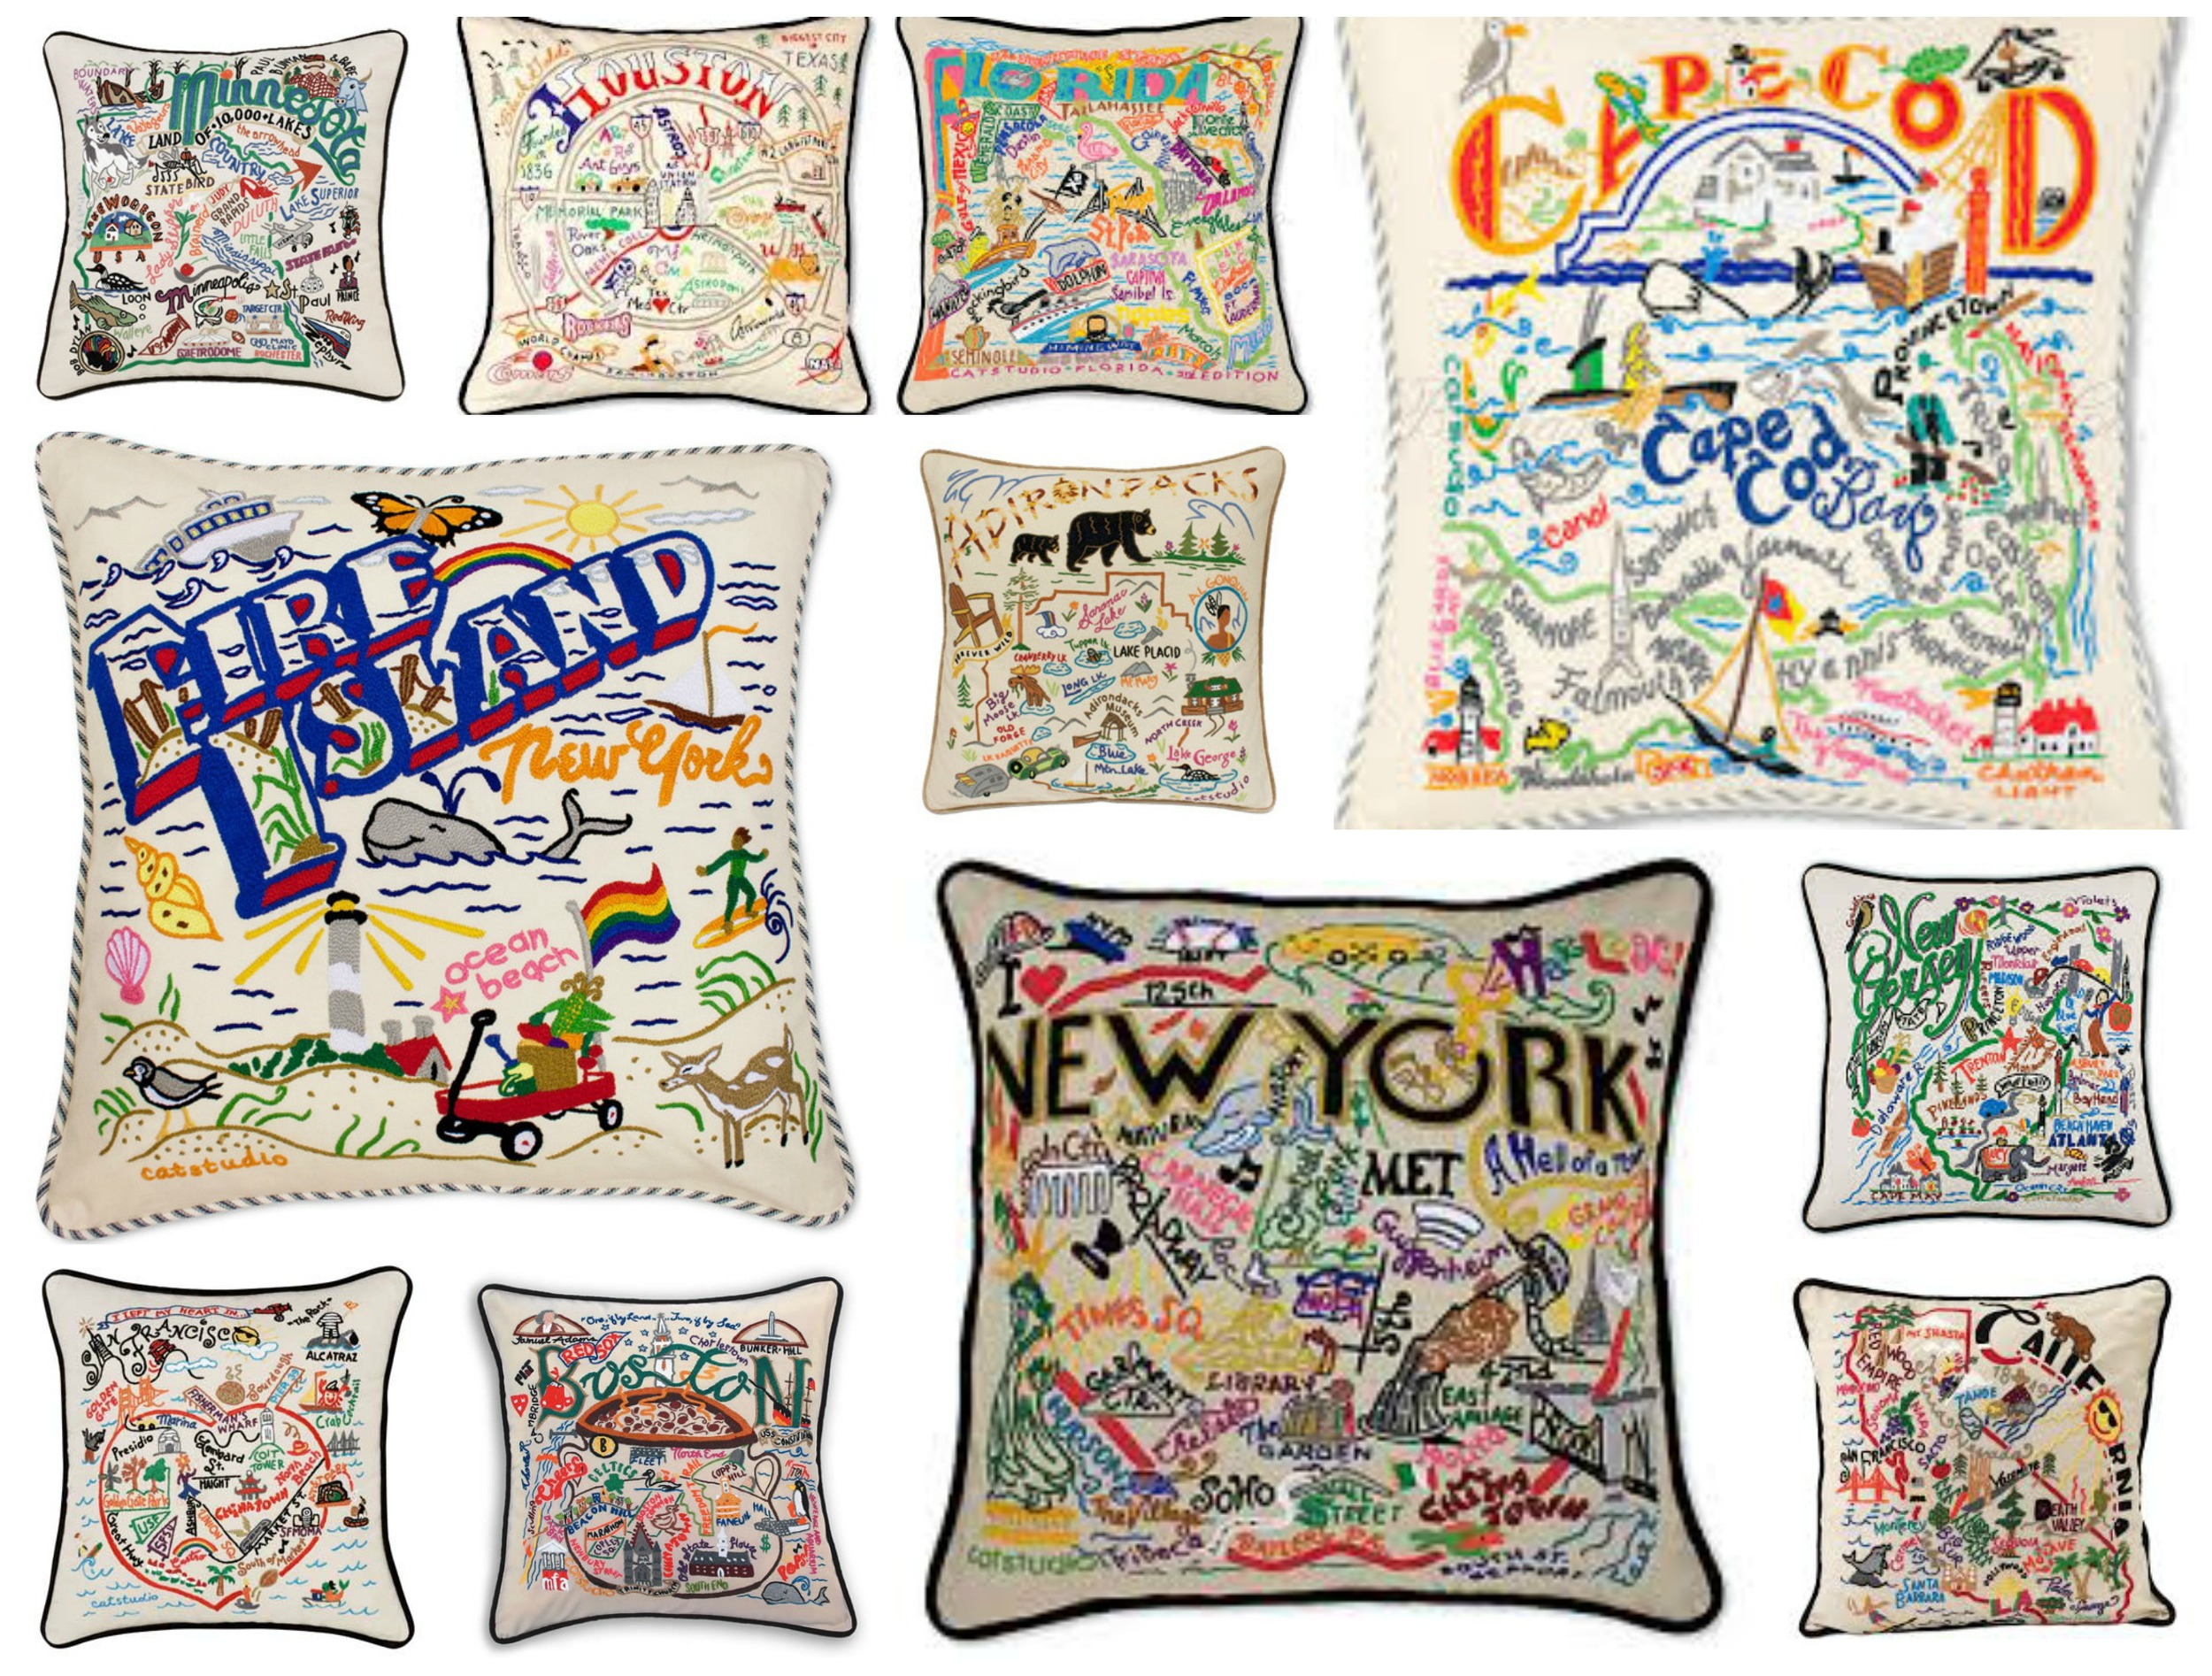 Collage Throw Pillows #1.jpg